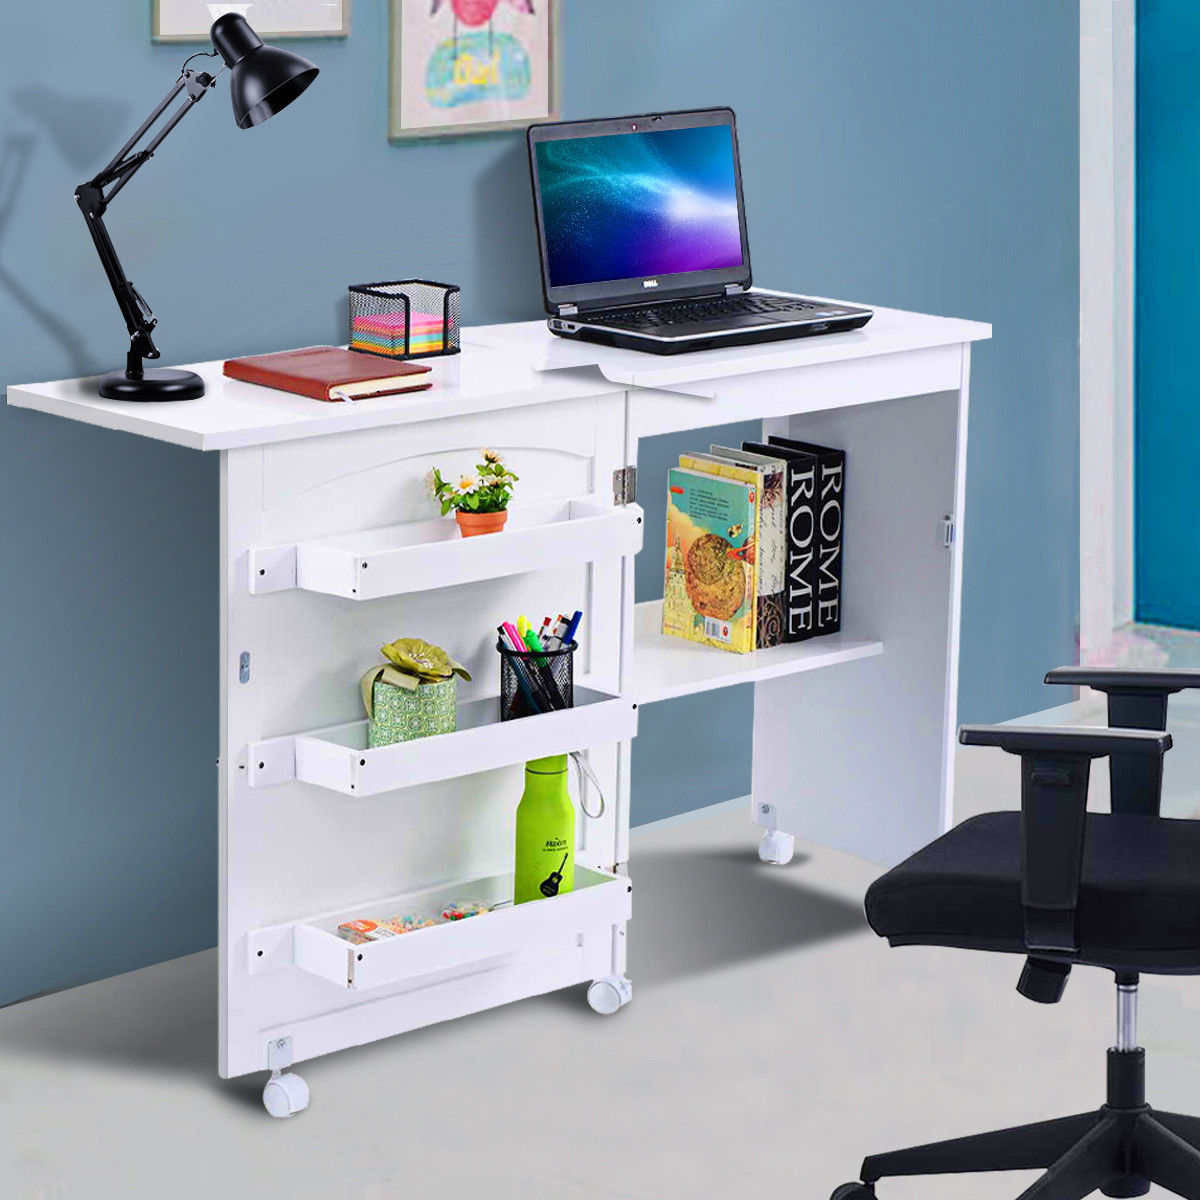 Costway White Folding Swing Craft Table Shelves Storage Cabinet Home Furniture W Wheels Walmart Com Walmart Com